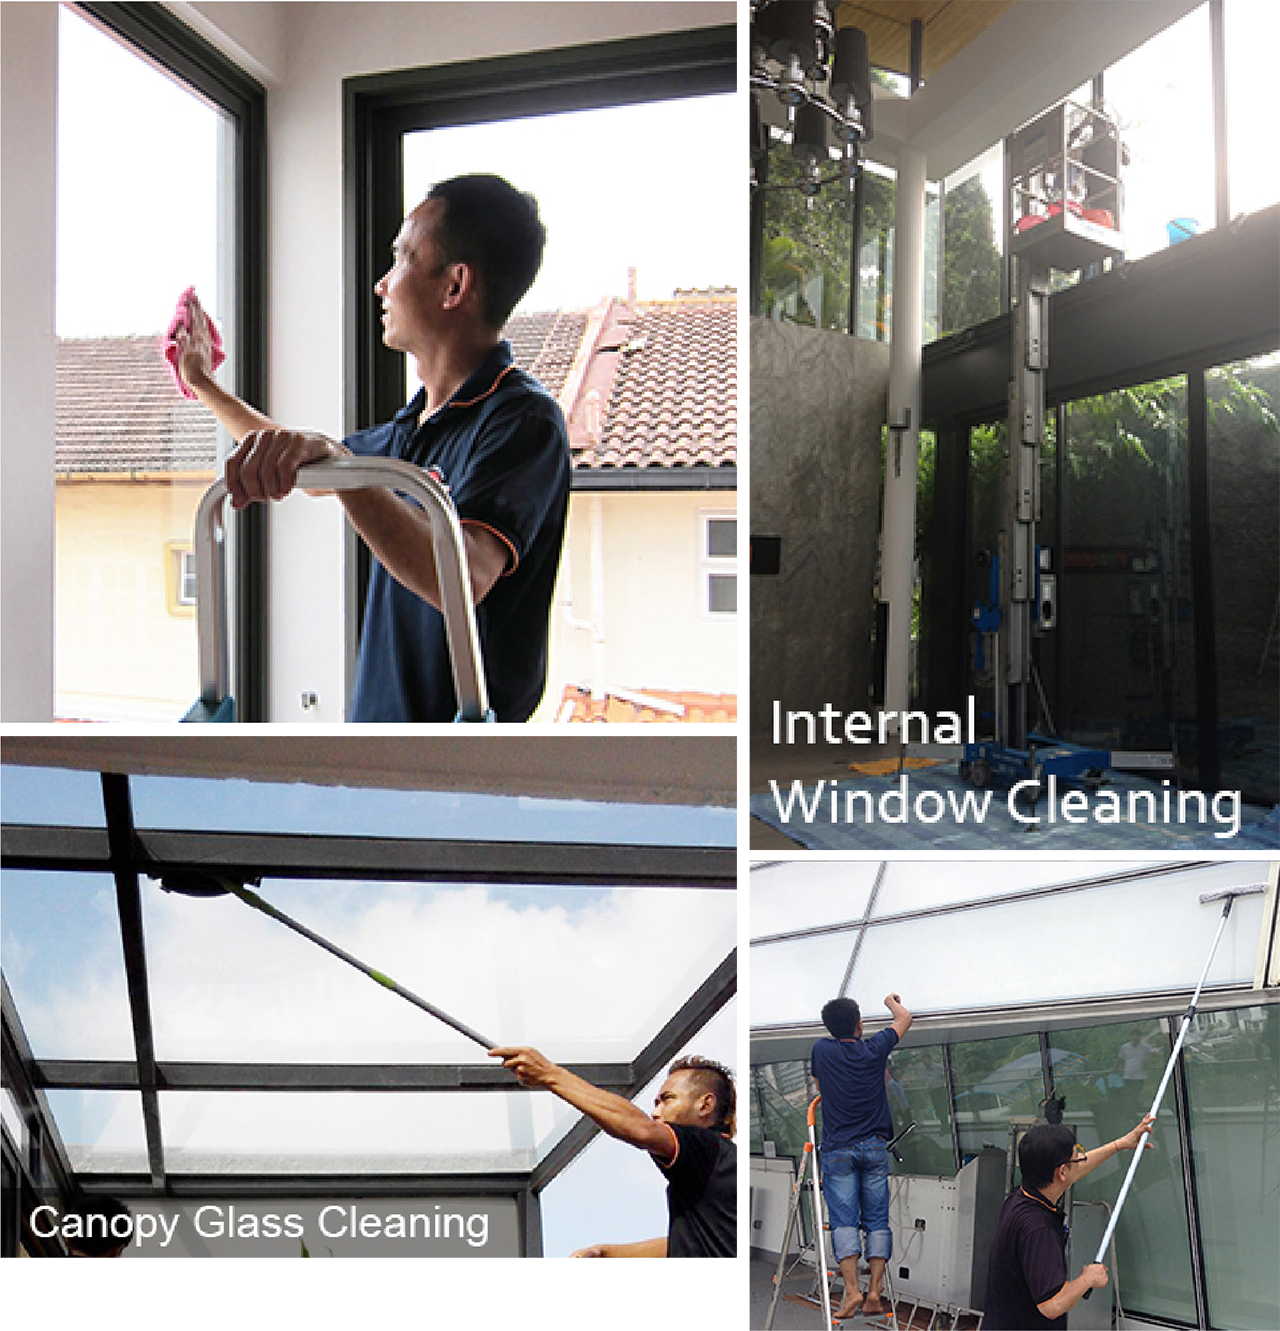 Window Cleaning - Your Professional One-Stop Cleaning Services